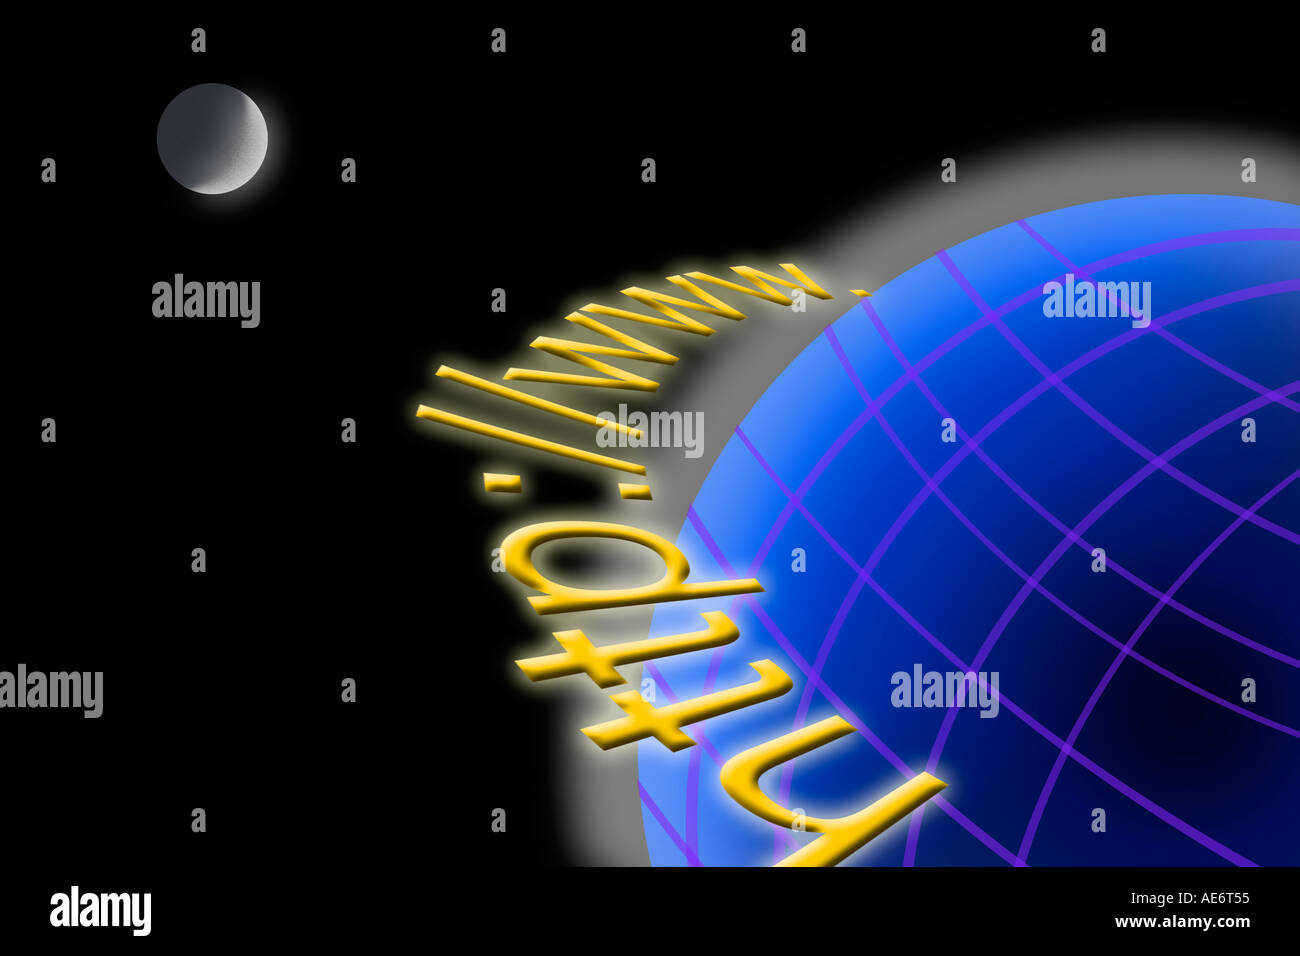 RHS70964 Conceptual digital images showing internet browsing code http with moon and earth - Stock Image